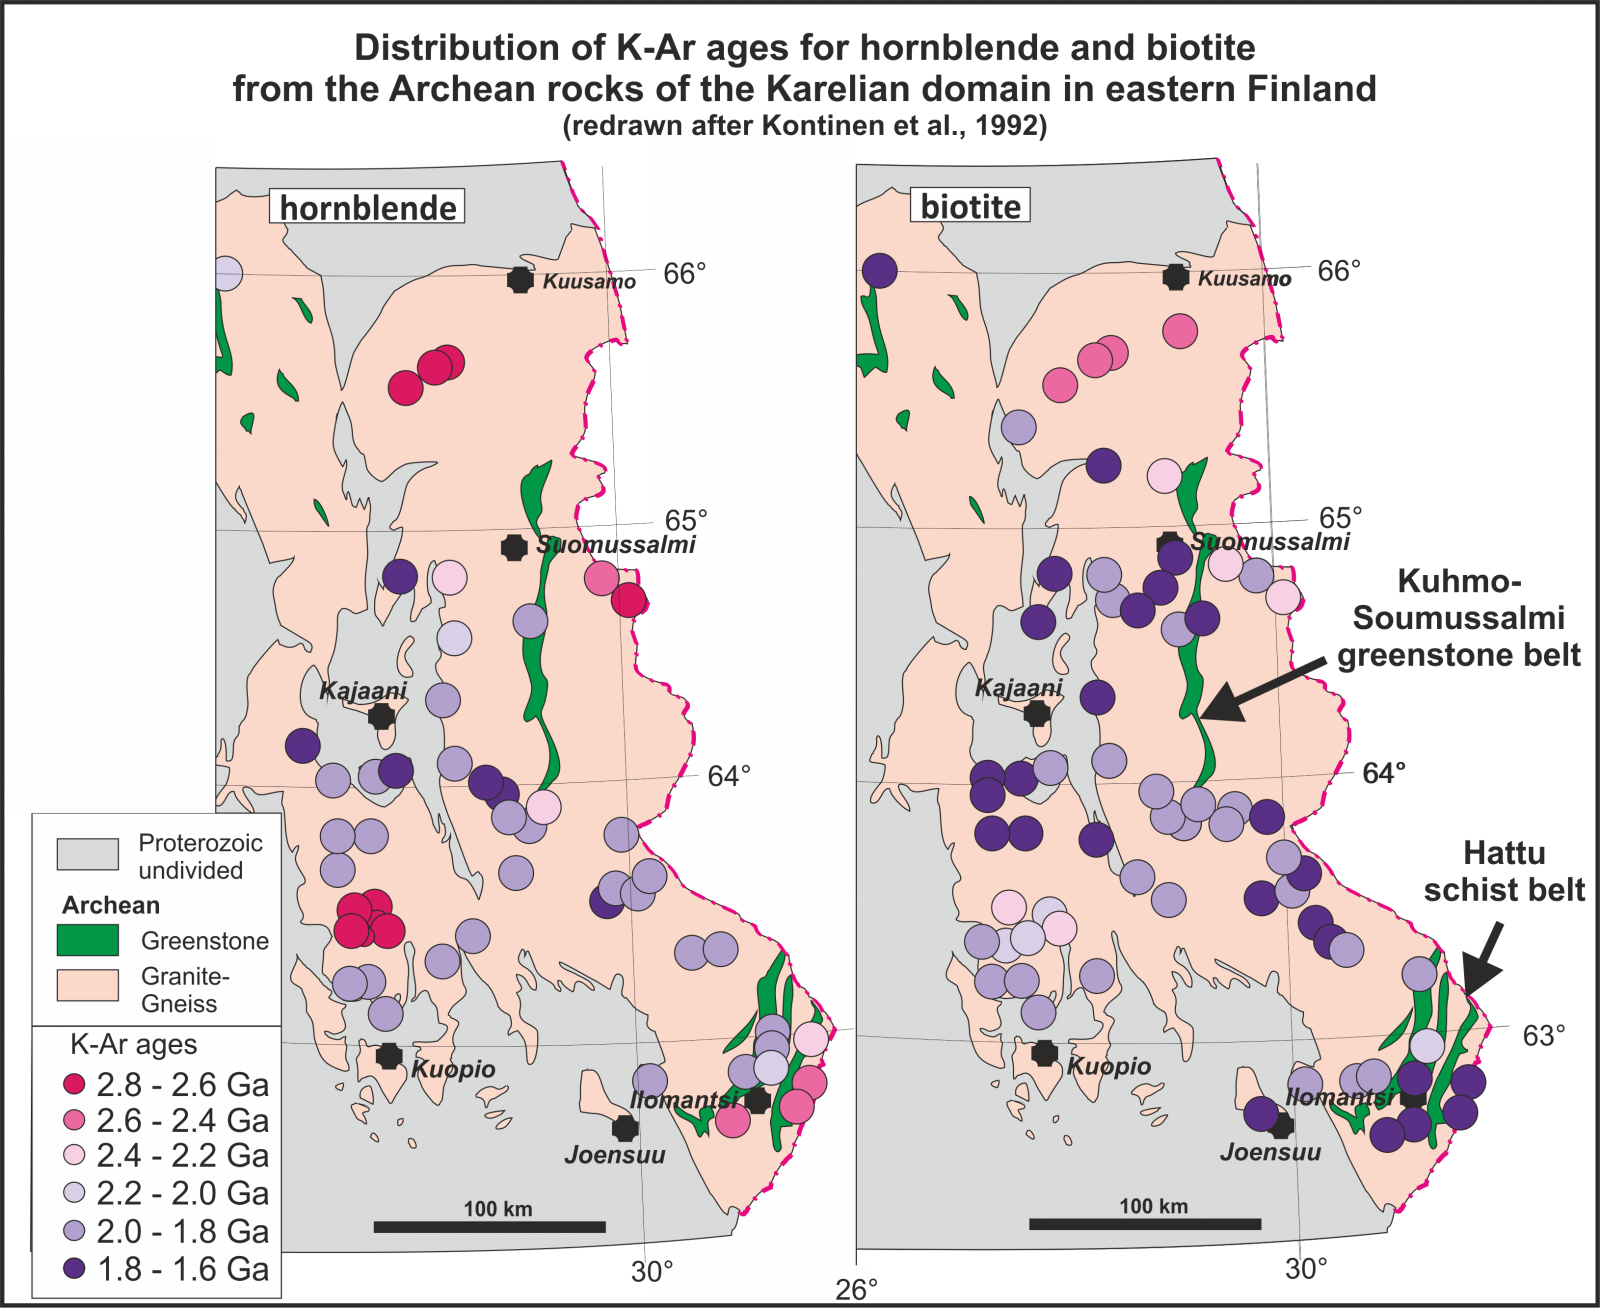 Distribution of K-Ar ages for hornblende and biotite from the Archean rocks of the Karelian domain in eastern Finland.